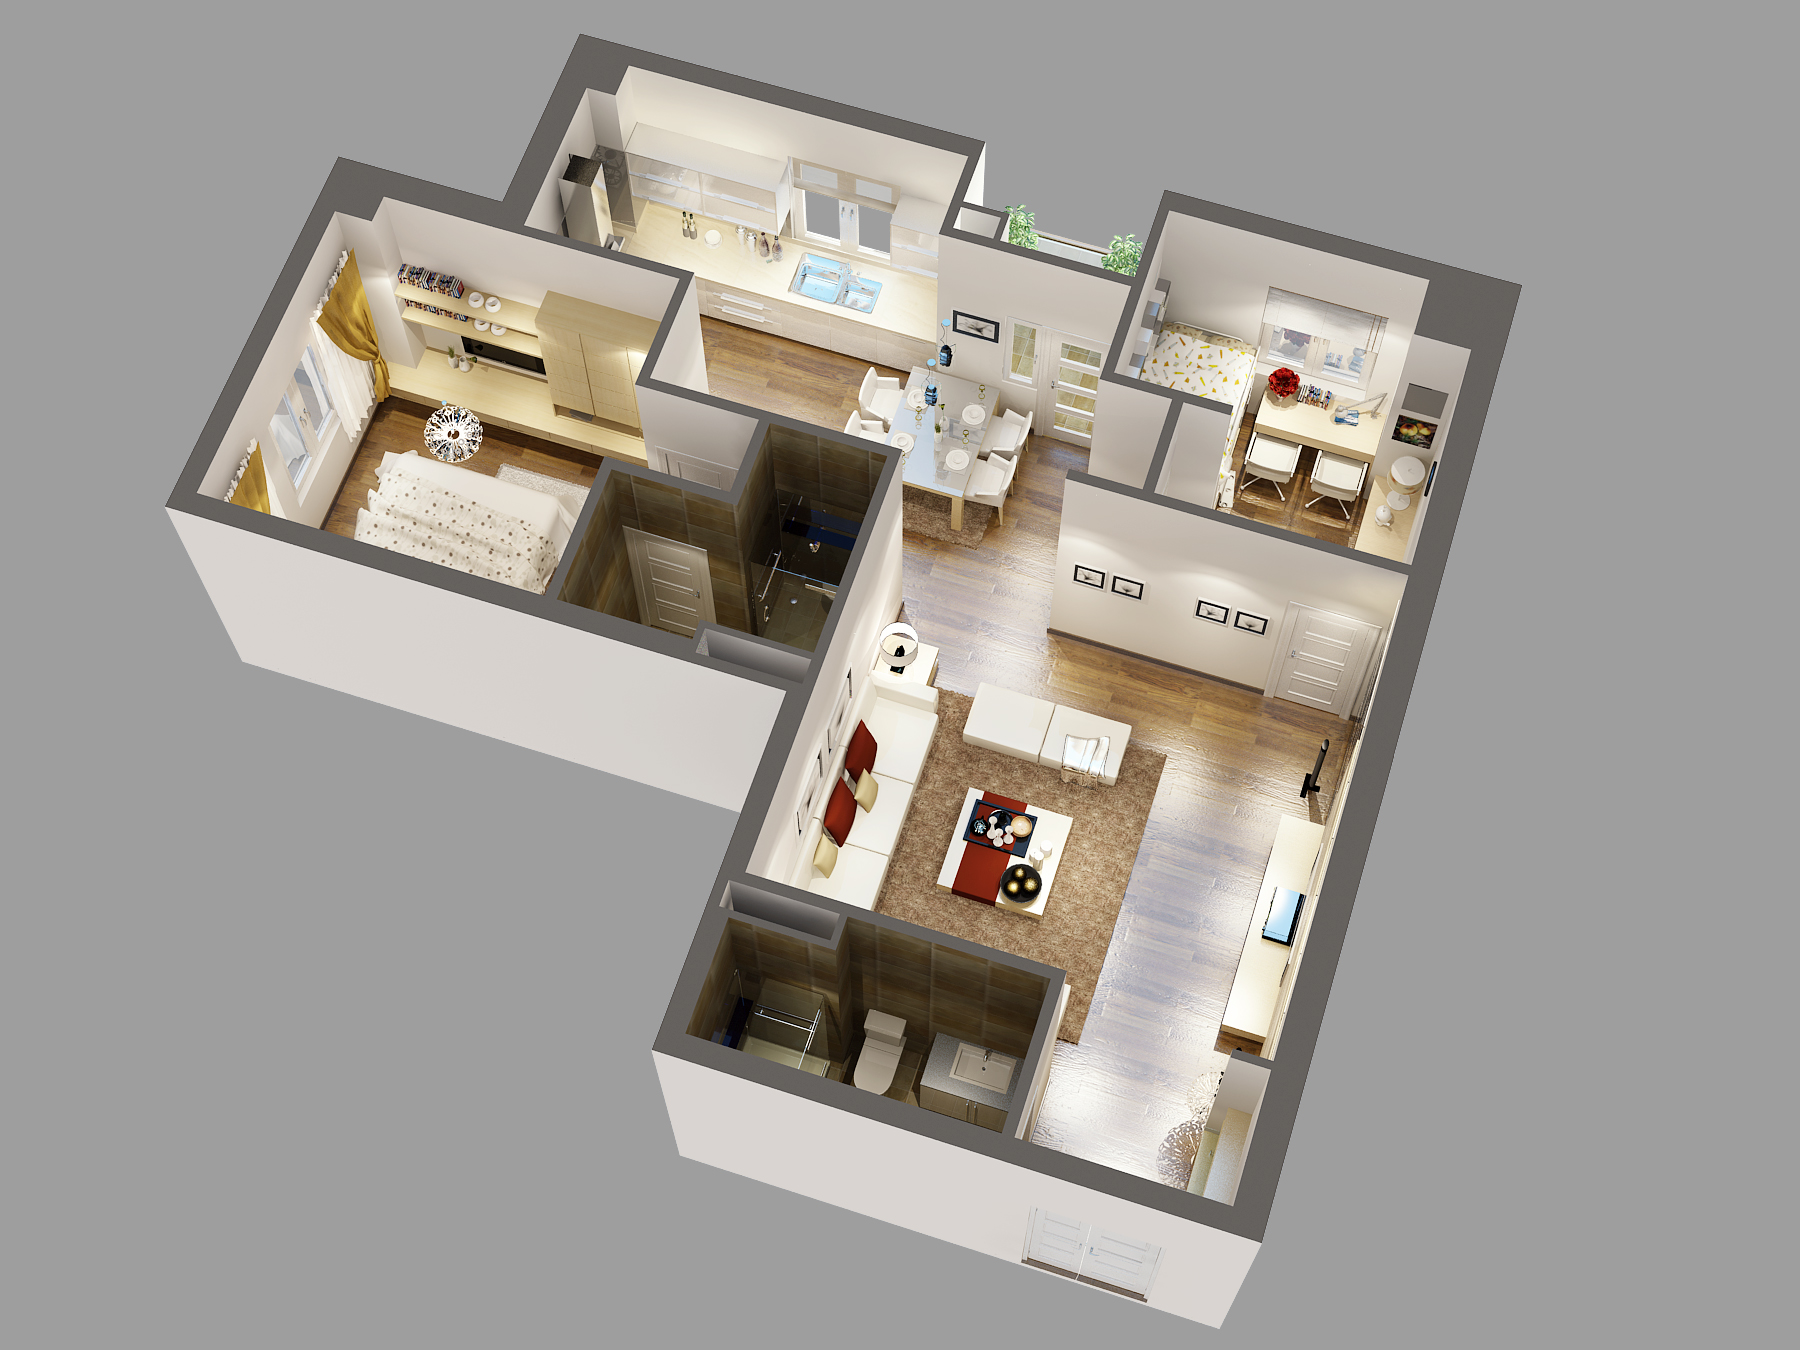 detailed house cutaway 3d model 3d modeldetailed house cutaway 3d model download max in interior